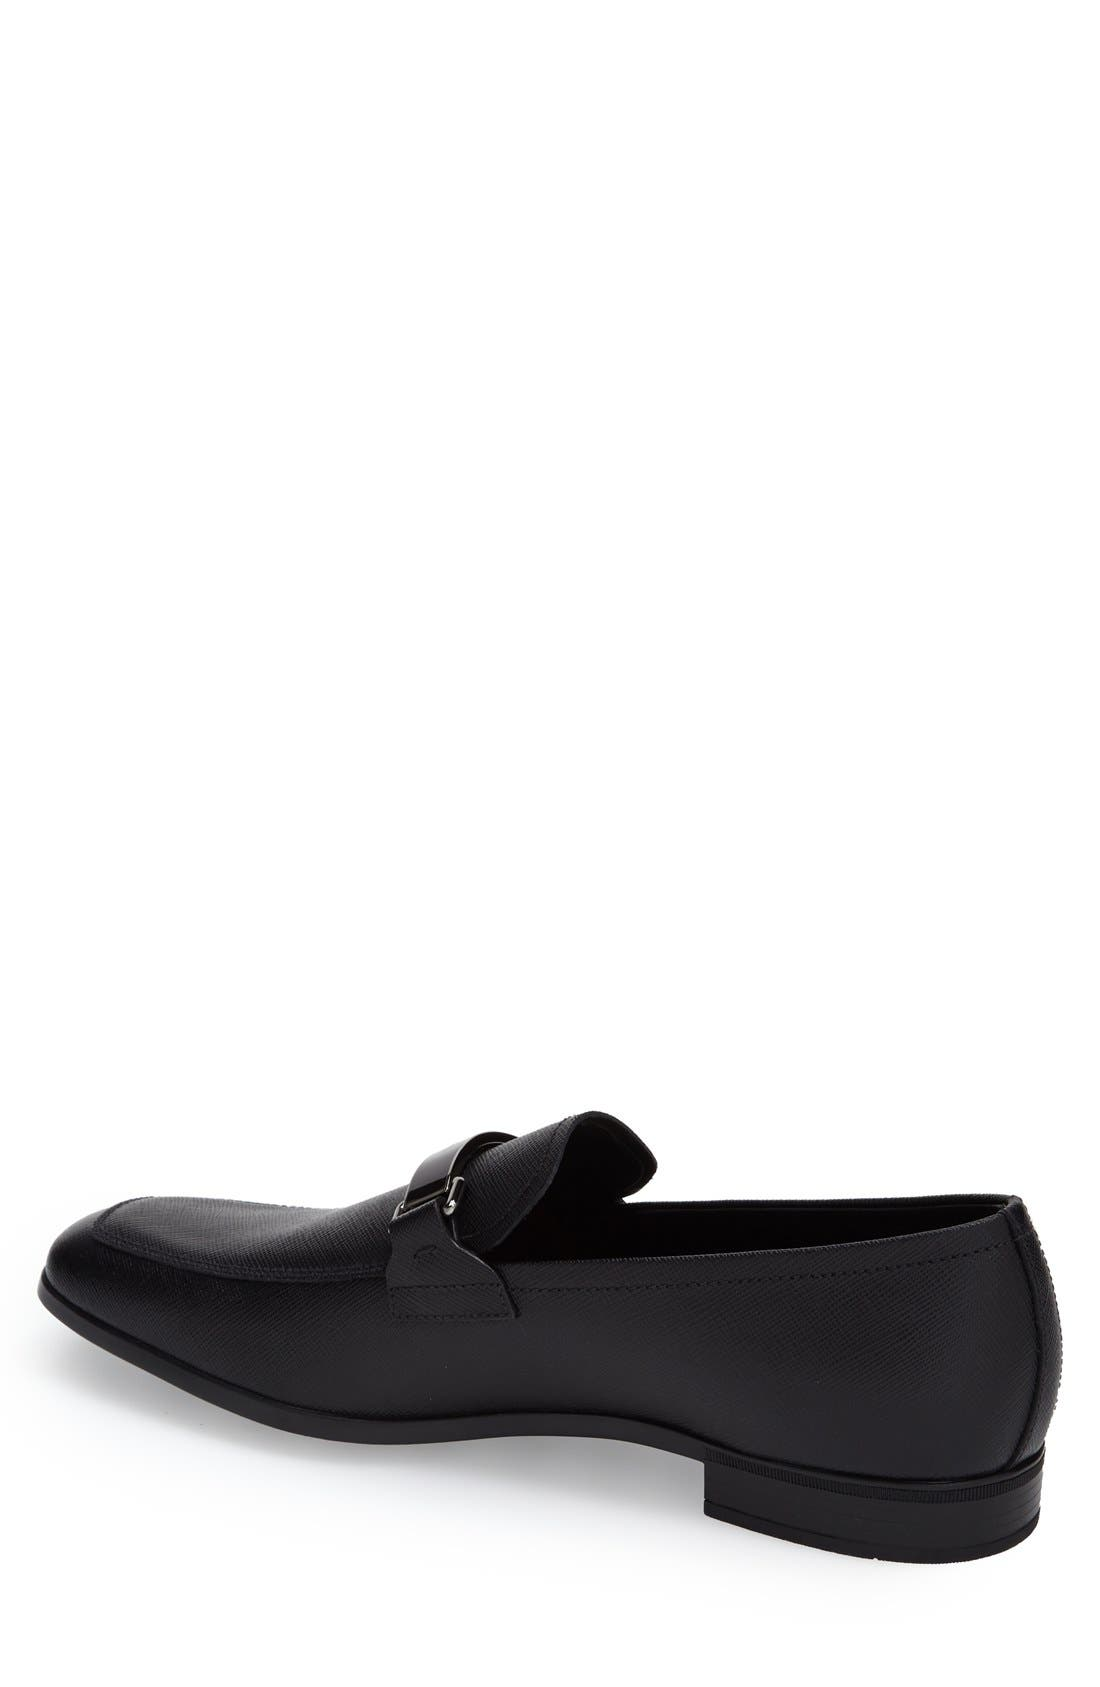 Saffiano Leather Bit Loafer,                             Alternate thumbnail 2, color,                             NERO LEATHER